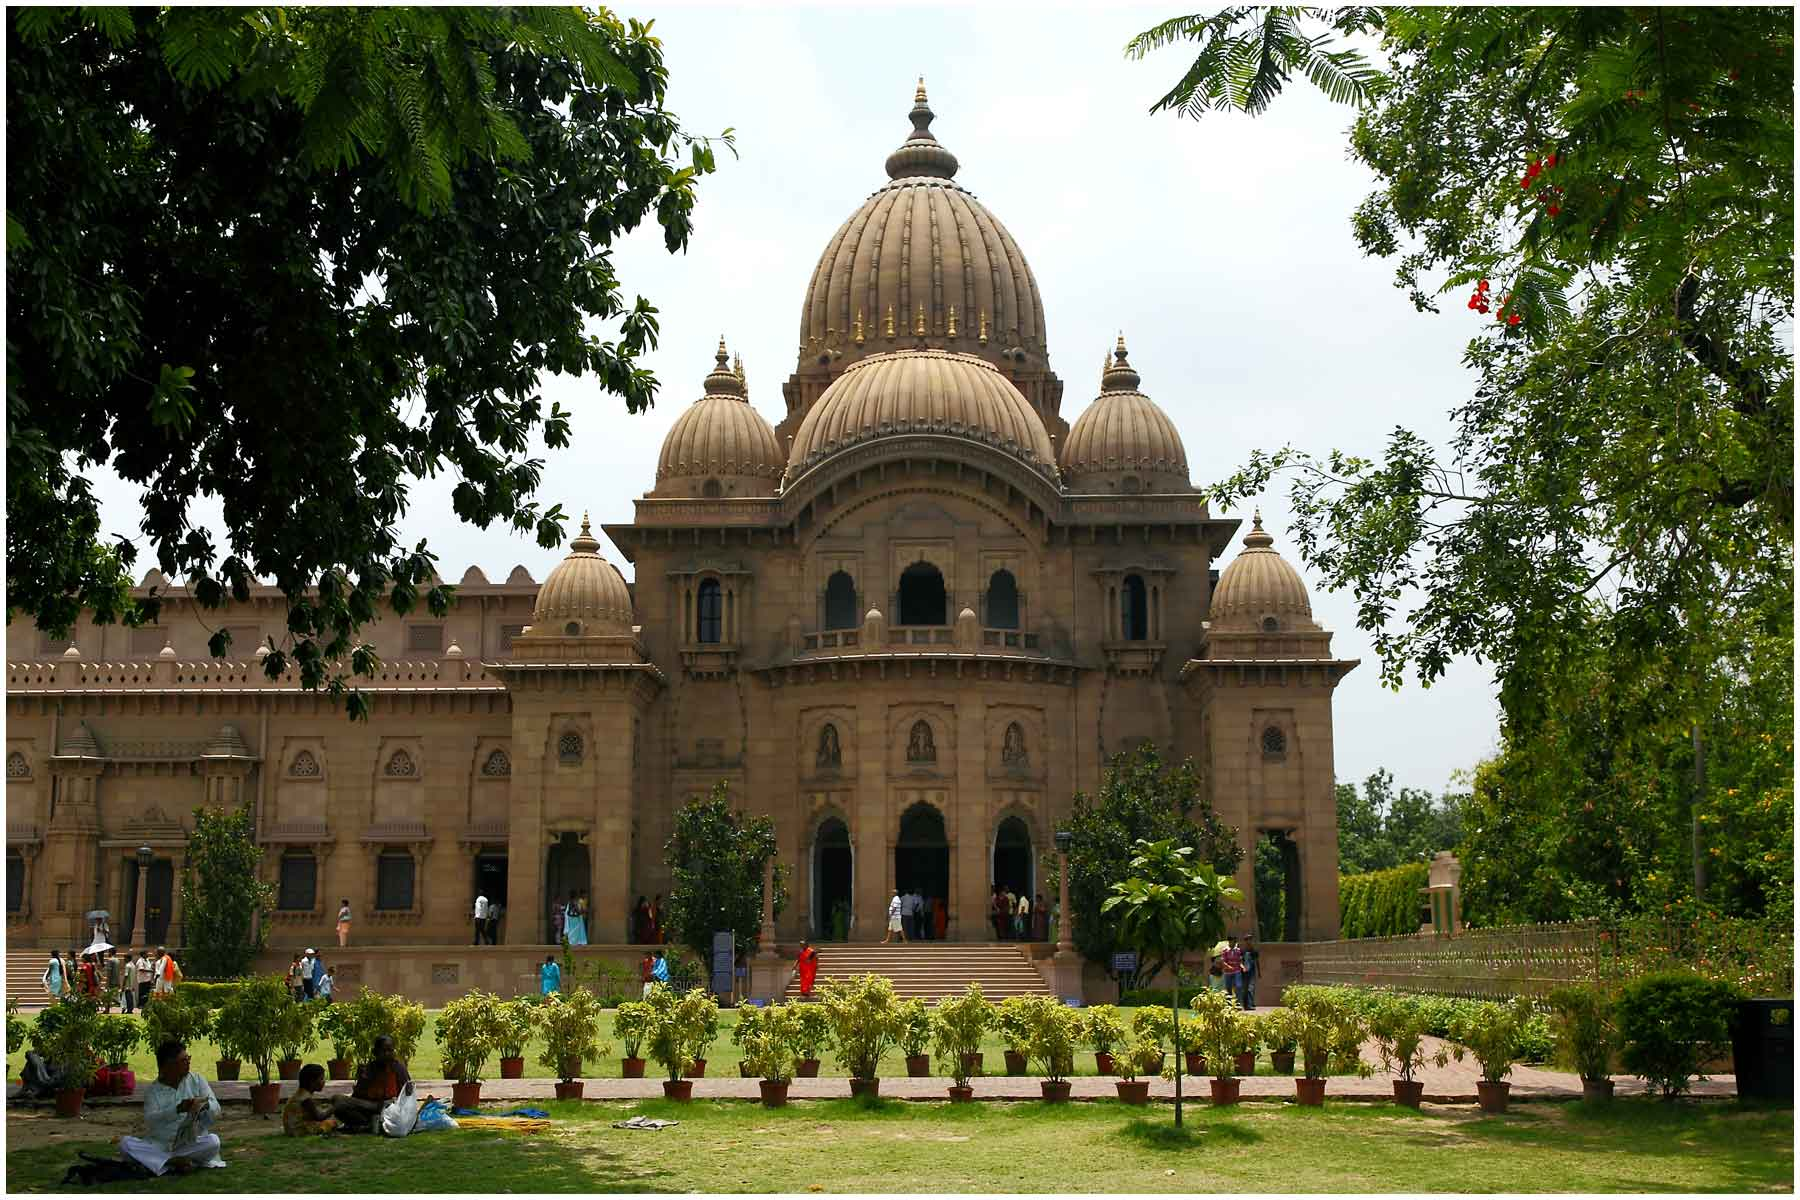 Heritage Monuments & Imperial Cities in India 8